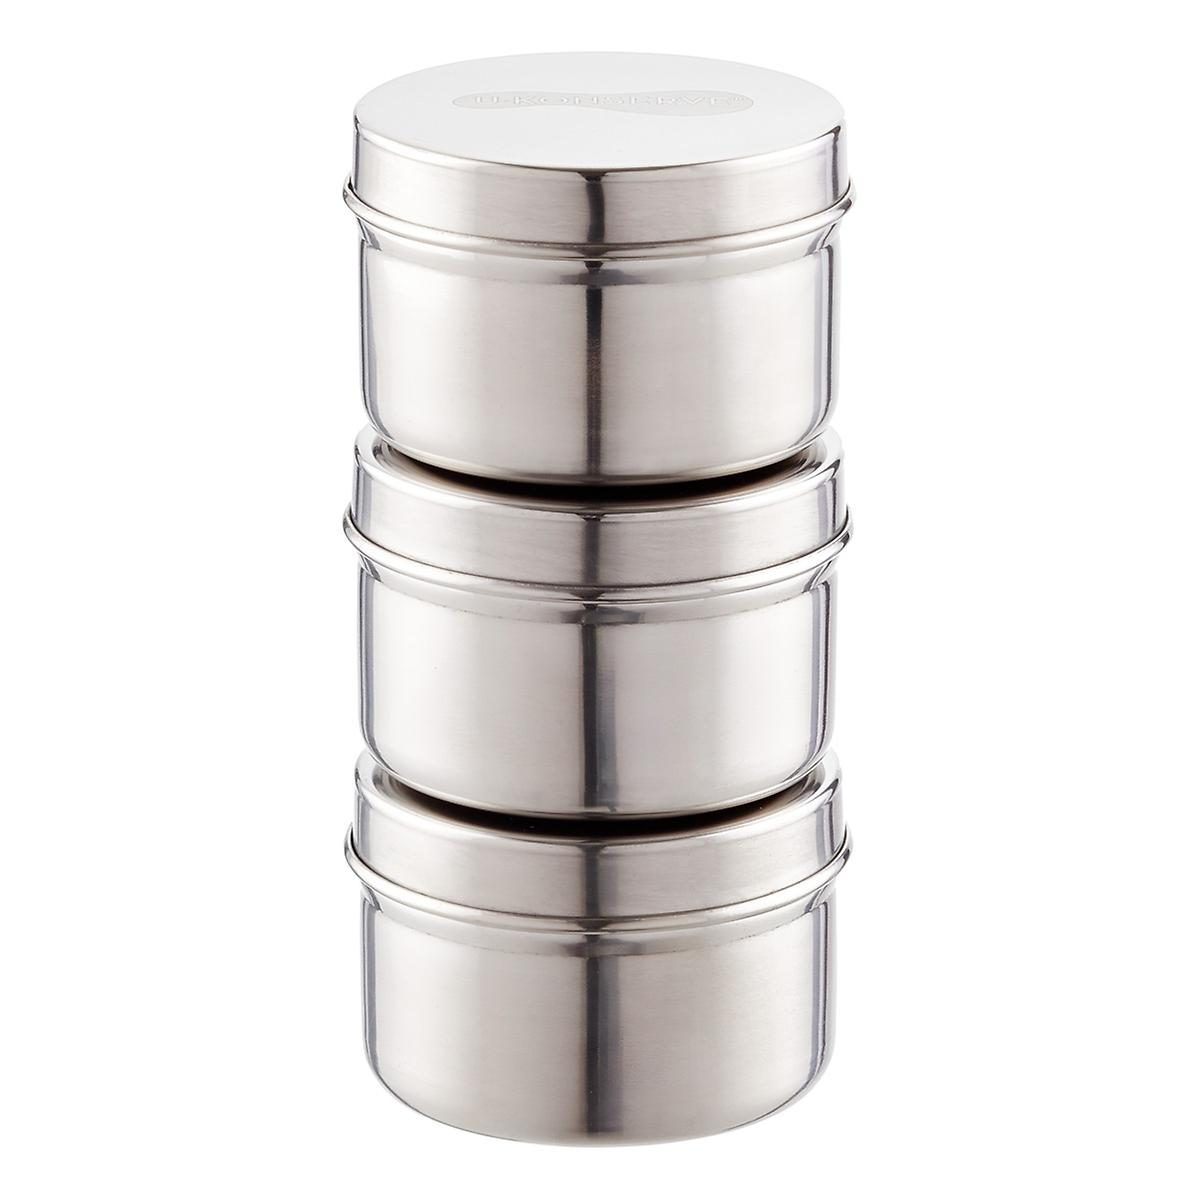 3 oz Stainless Steel Containers The Container Store